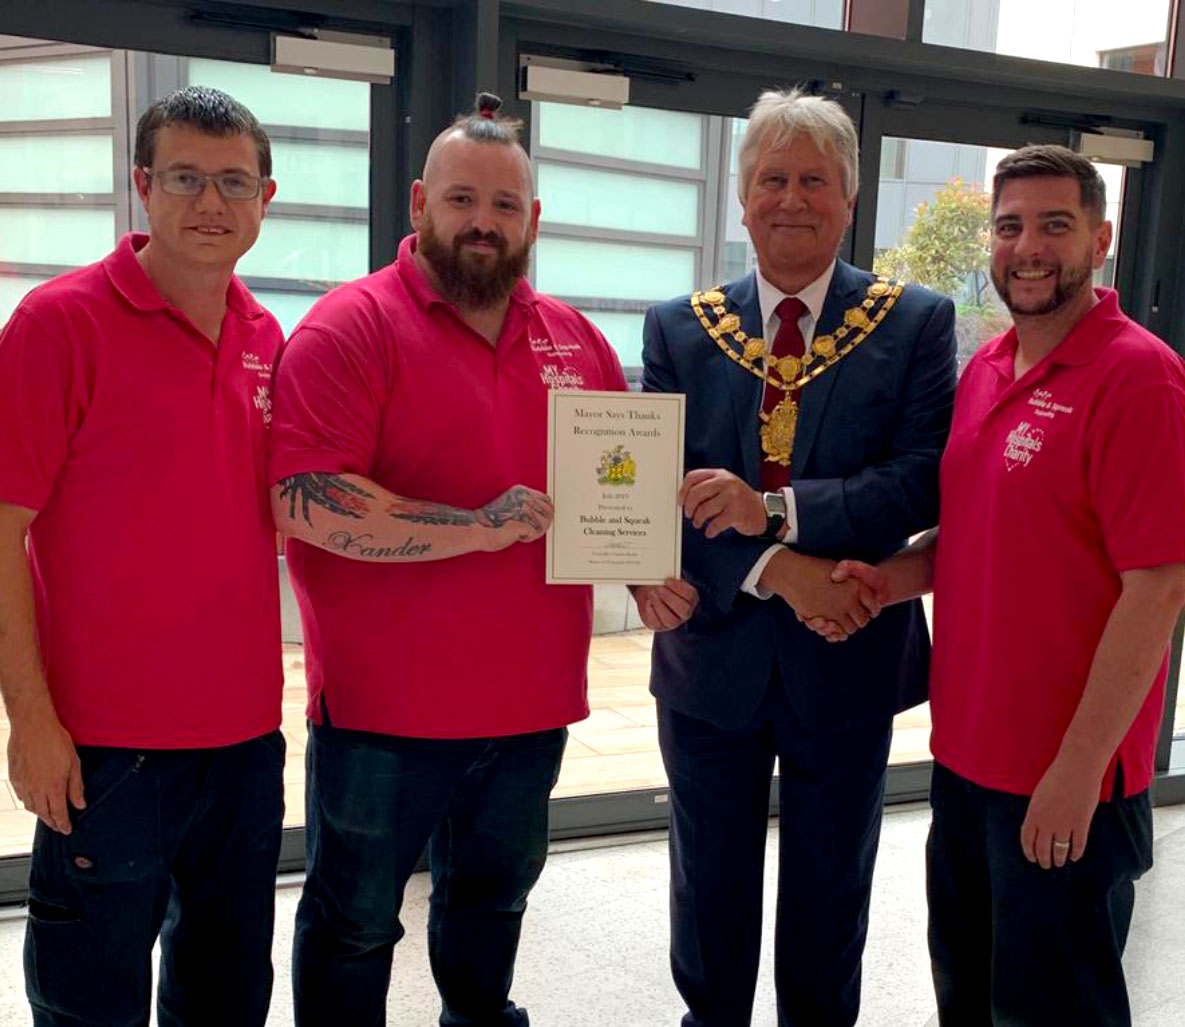 The Bubble & Squeak guys receiving the mayor's award for the charity word as back of the giving back page.